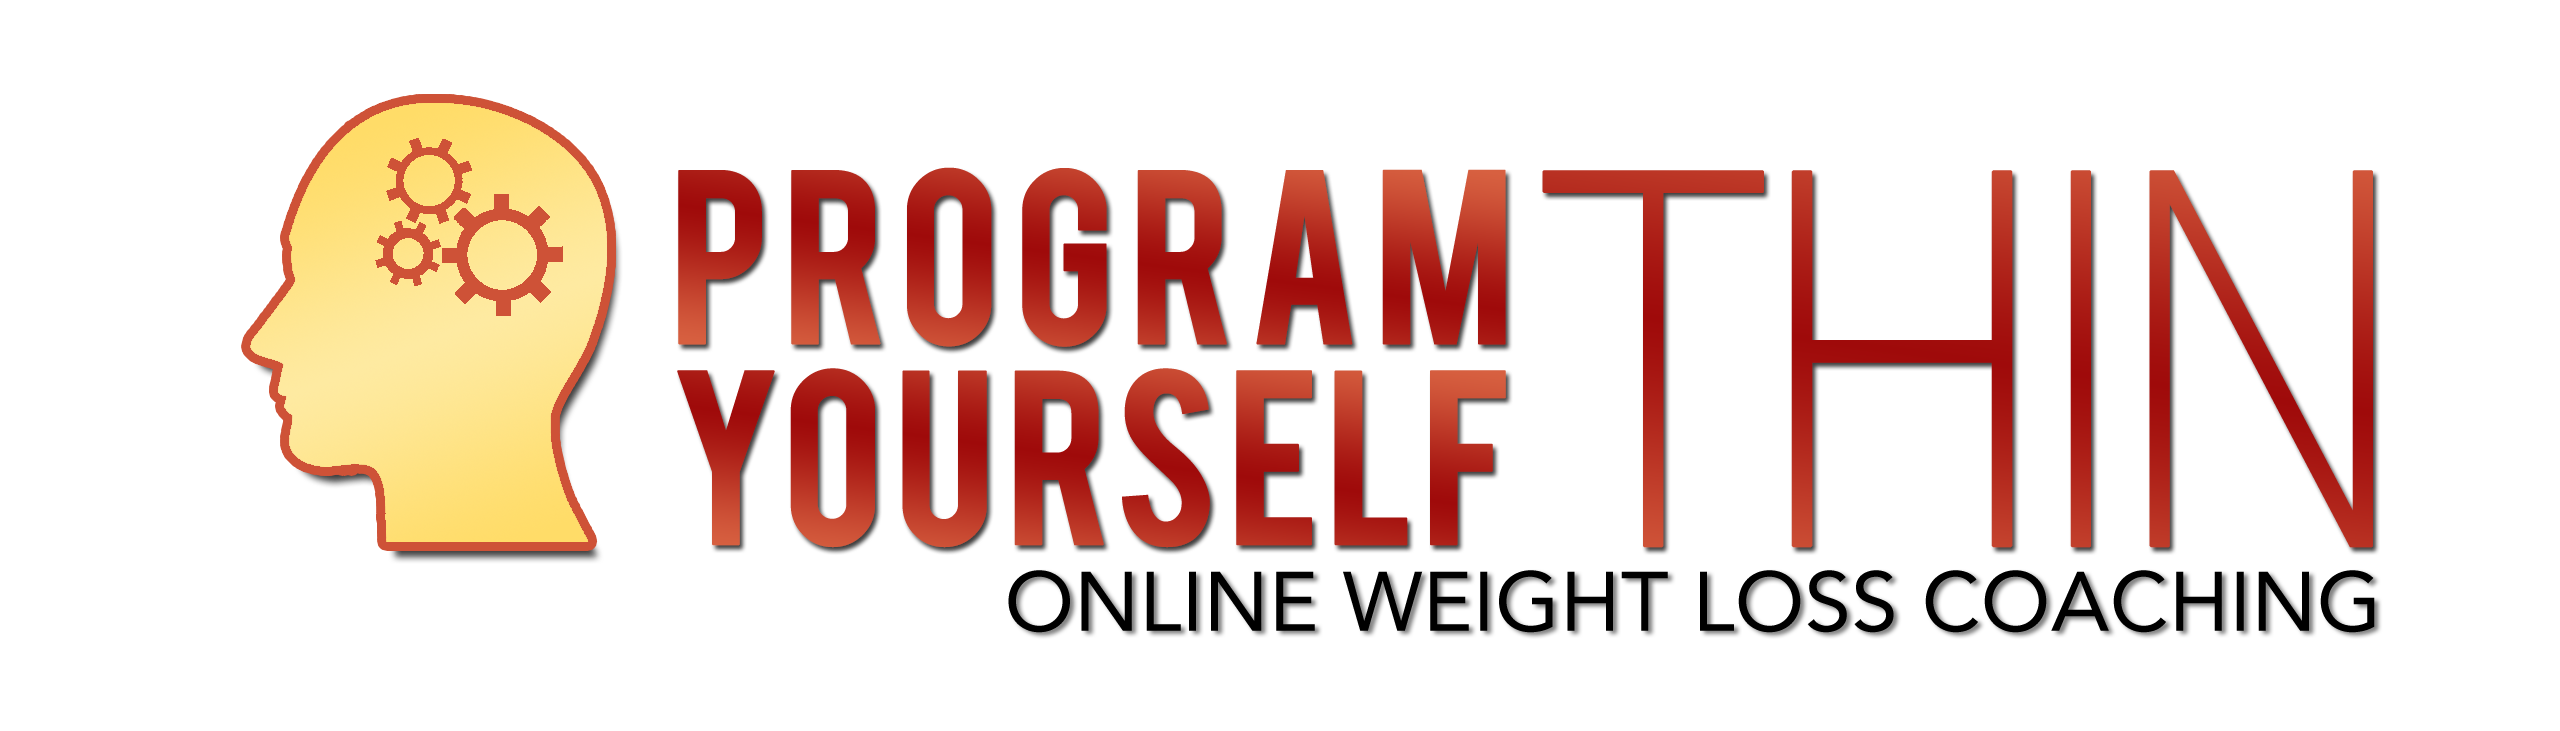 Program Yourself Thin - Online Weight Loss Coaching